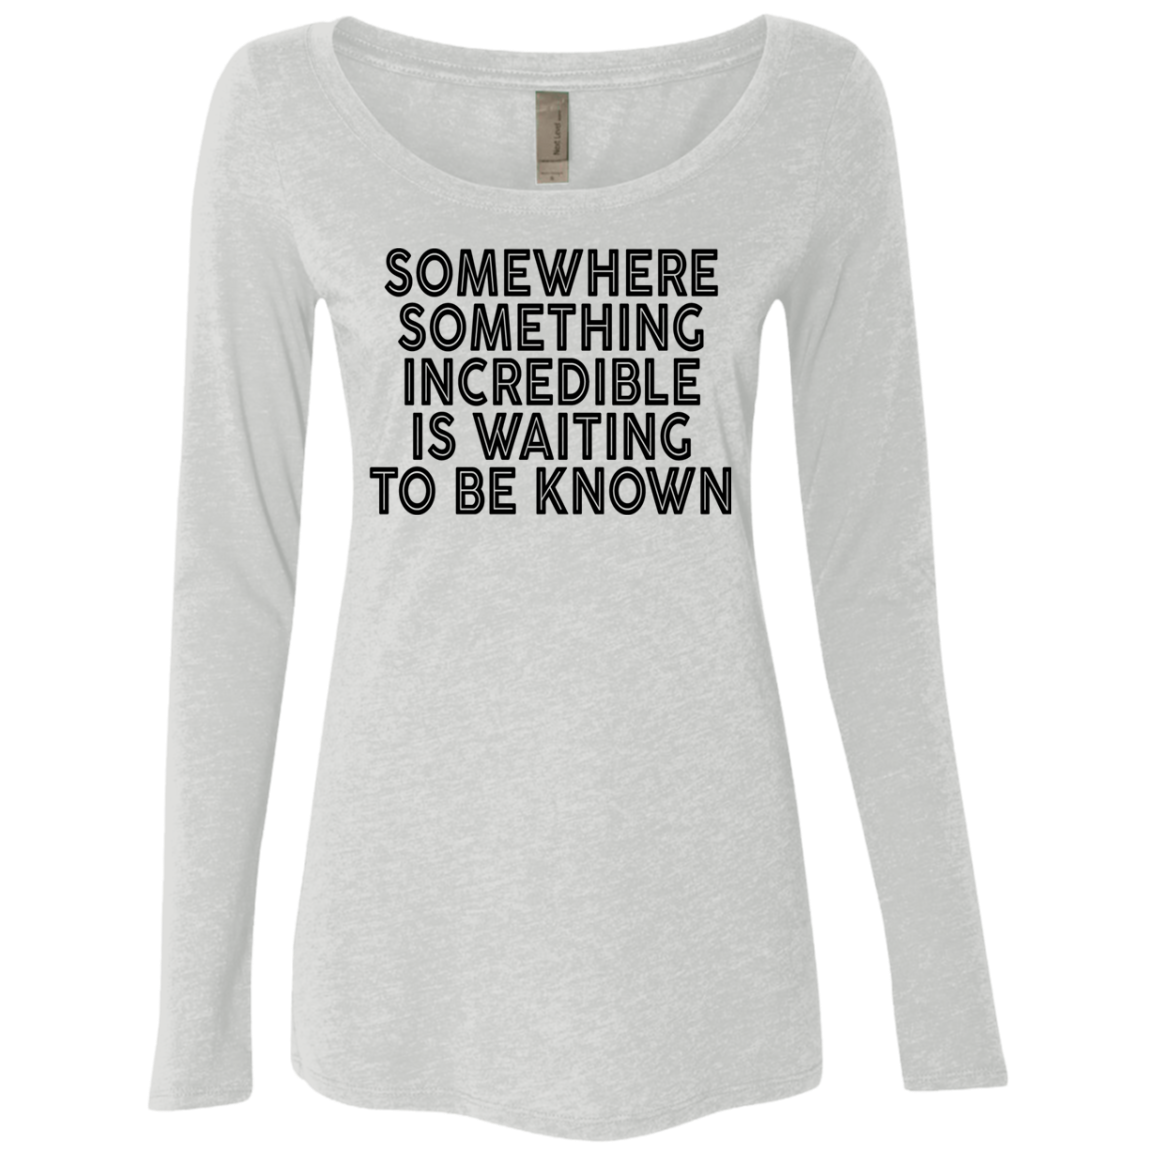 Somewhere Something Incredible Is Waiting To Be Known Women's Long Sleeve Tee